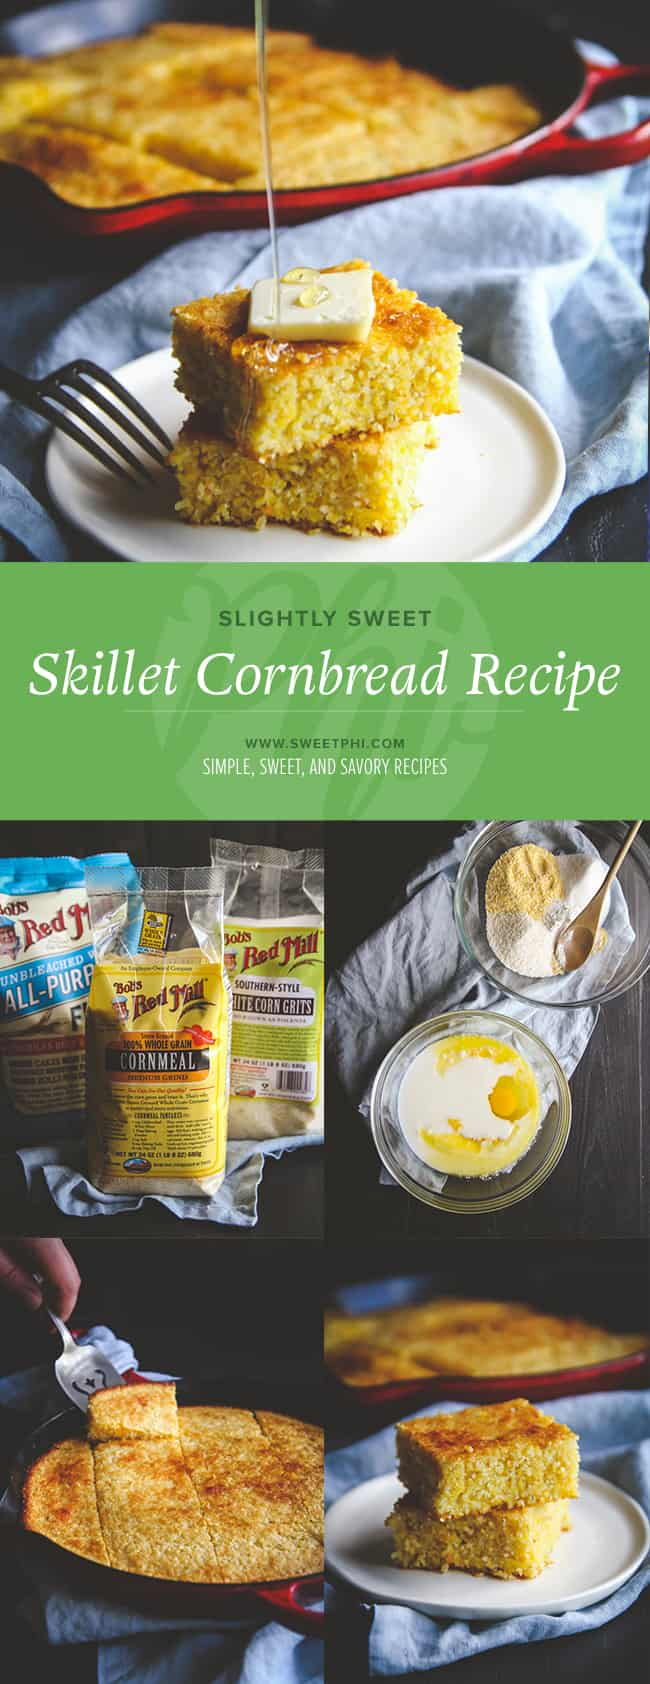 Slightly sweet skillet cornbread recipe from @sweepthi